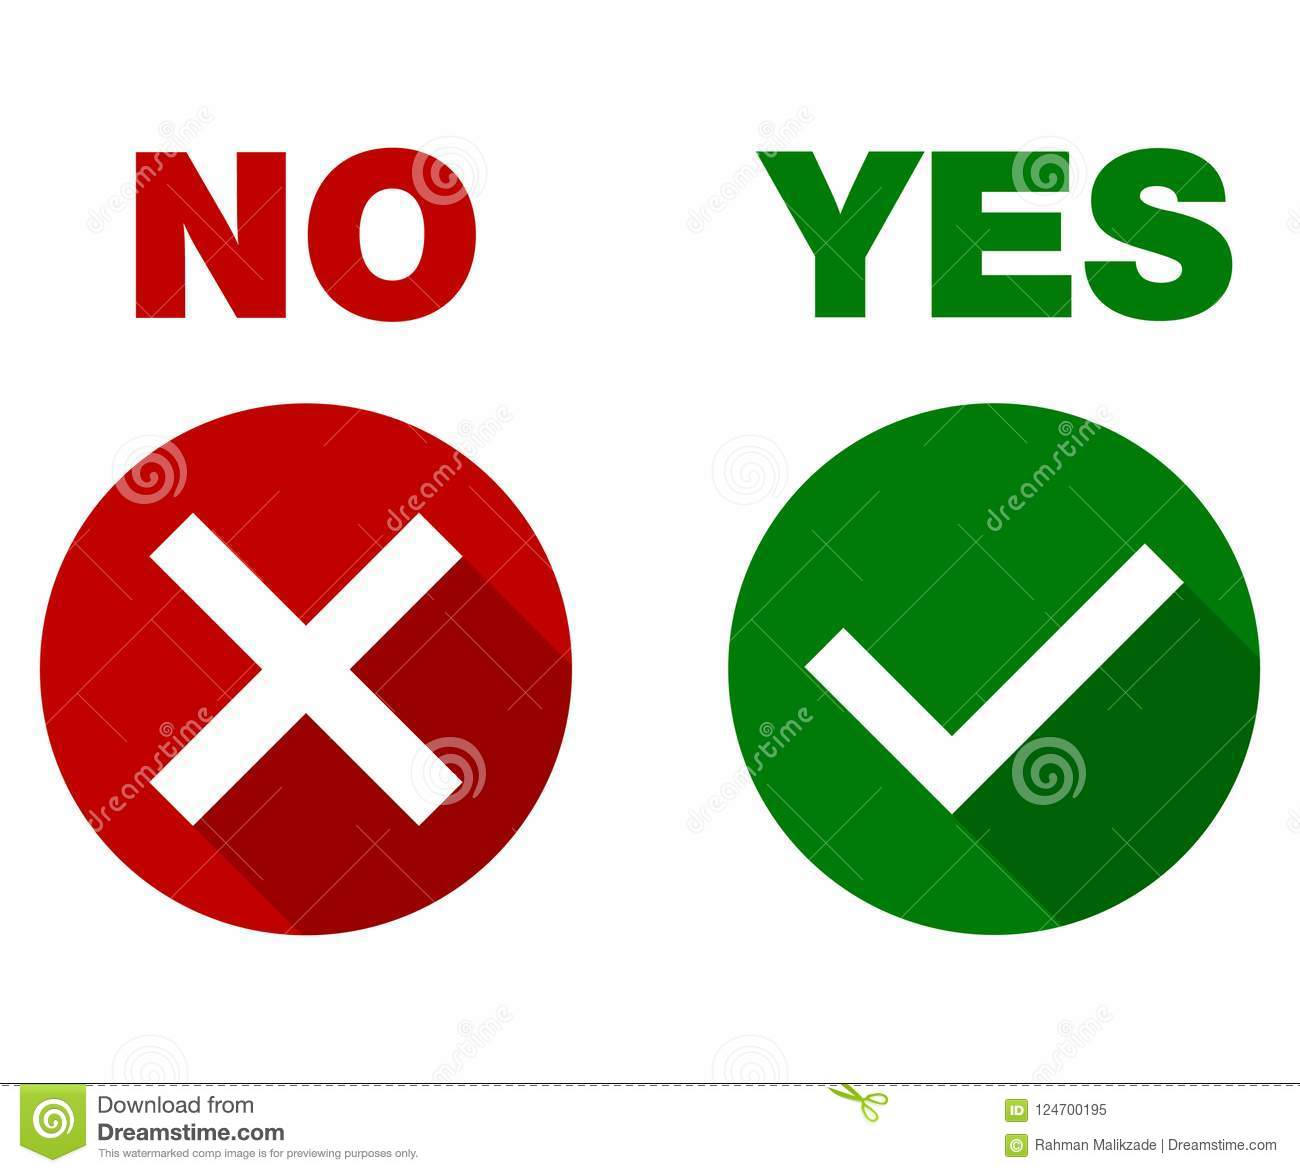 Tick and cross signs. Yes and No, Green checkmark OK and red X icons, isolated on white background.